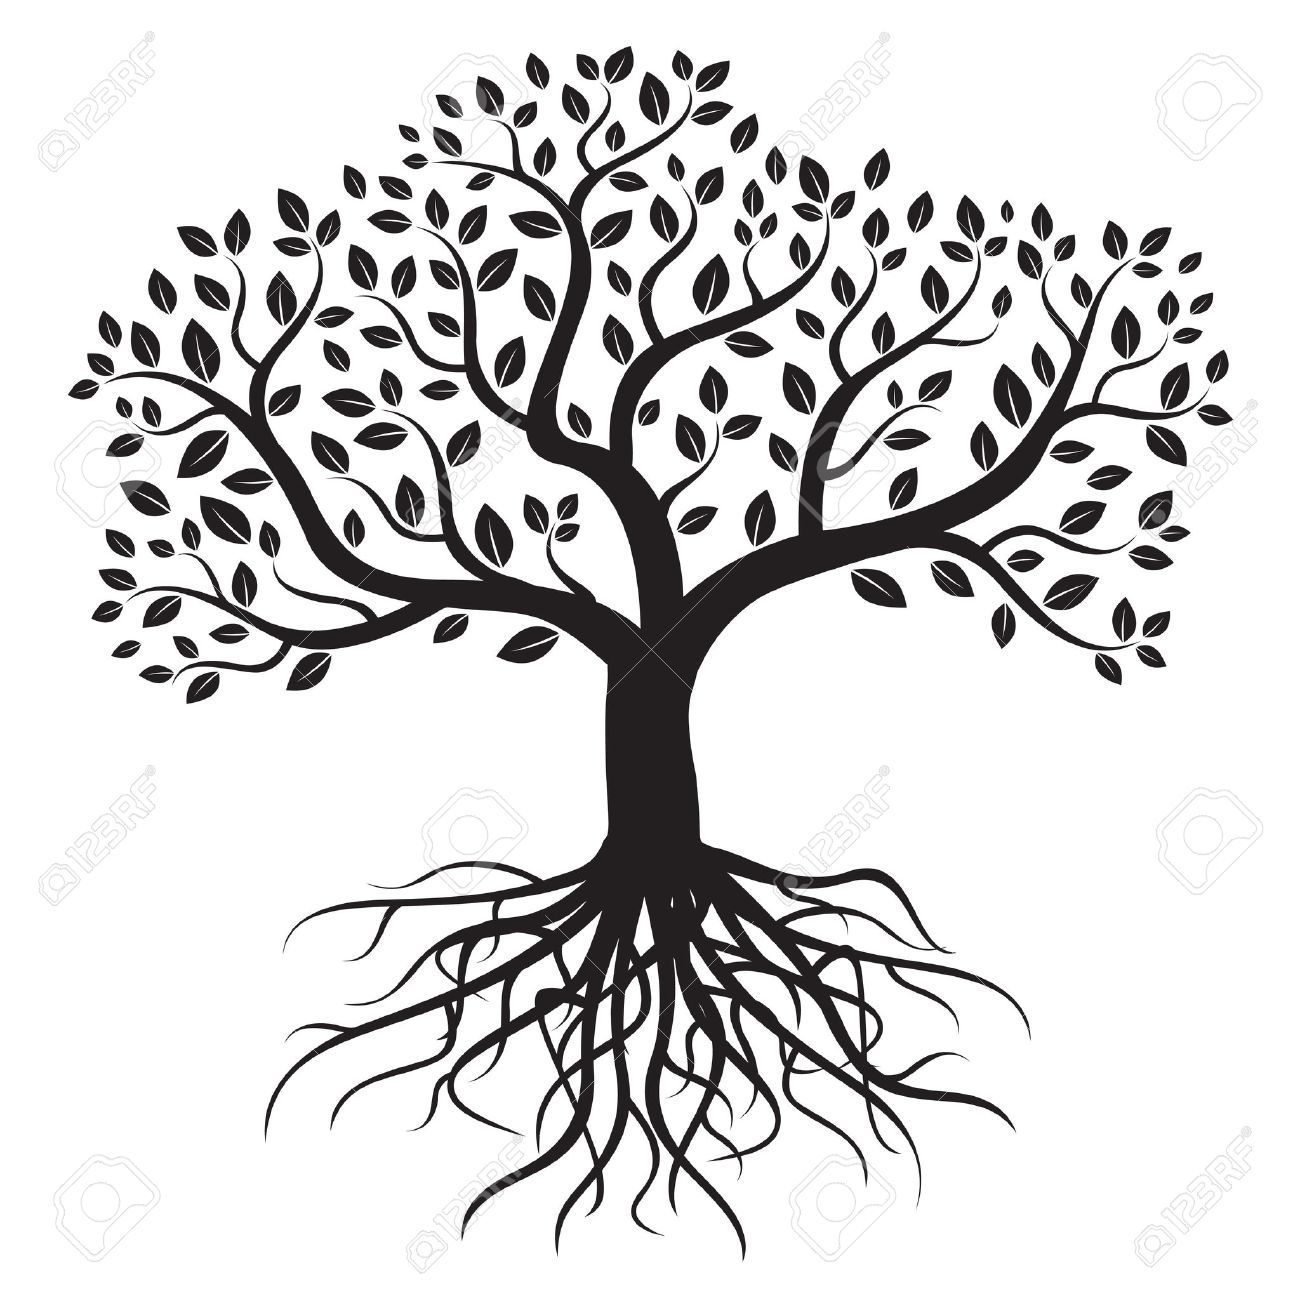 Tree clipart black and white with roots jpg royalty free library Black and white tree with roots clipart 4 » Clipart Portal jpg royalty free library